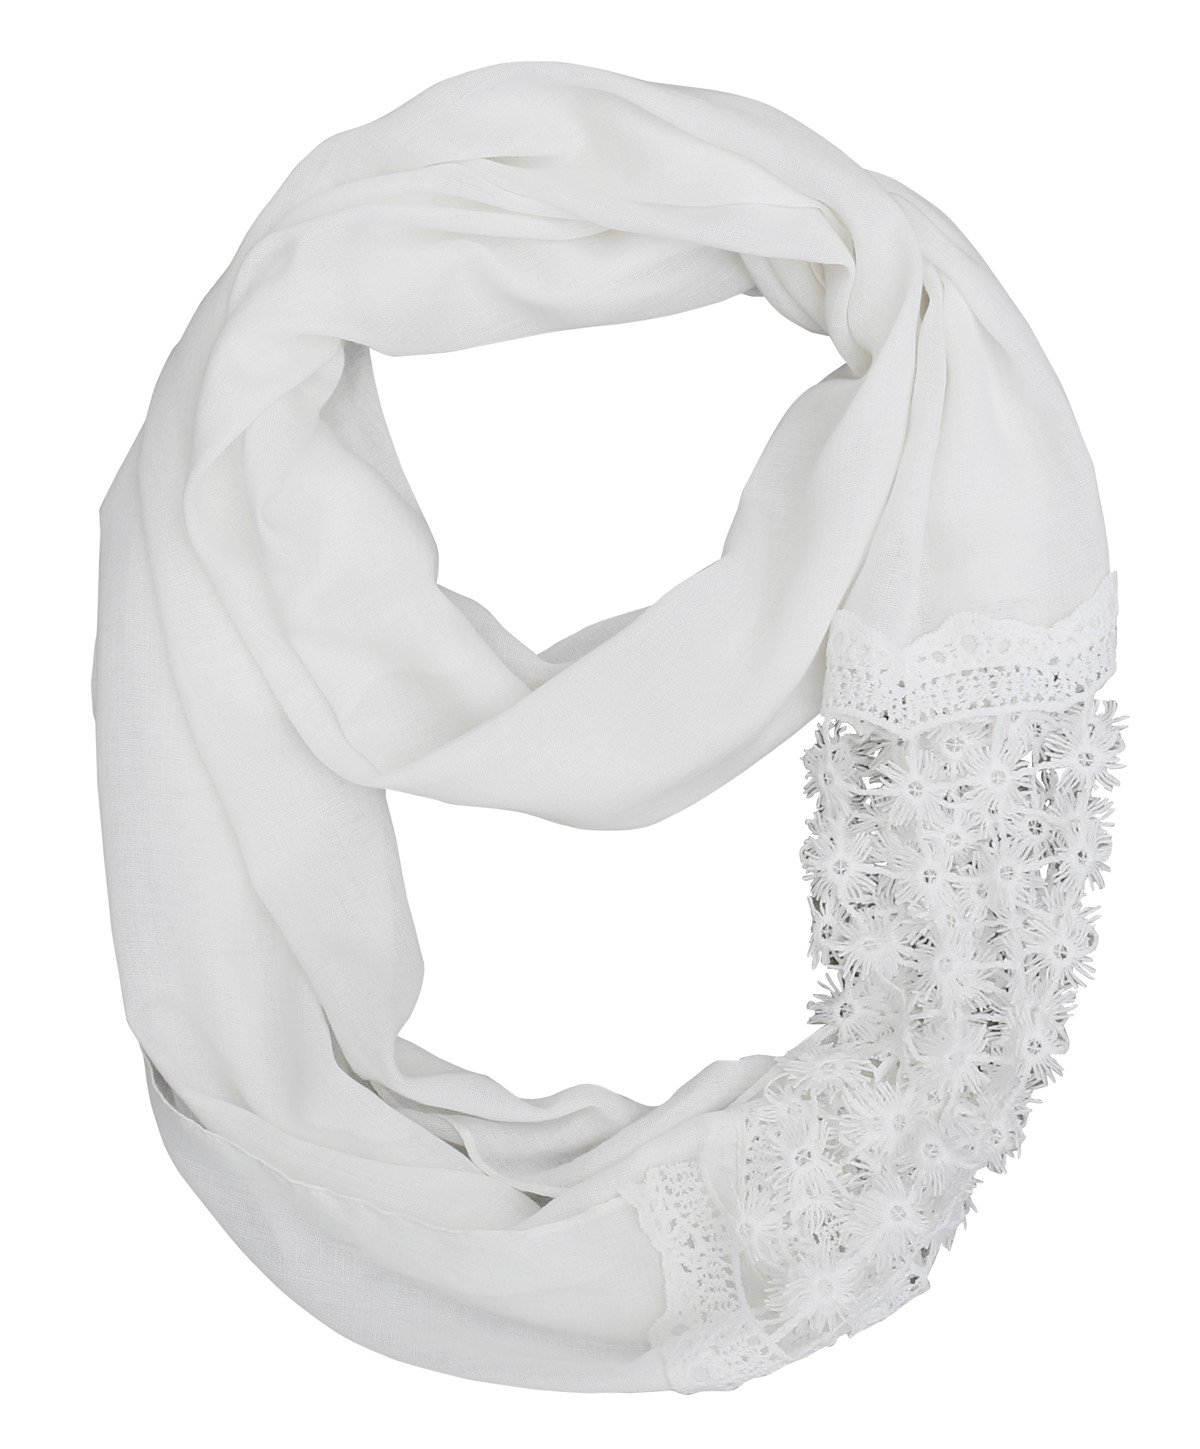 Lace Lightweight White Infinity Scarf Women – 2018 New Fashion Design Thin Light Soft Scarfs For Spring Summer, Ideal Gift(CL1-07)